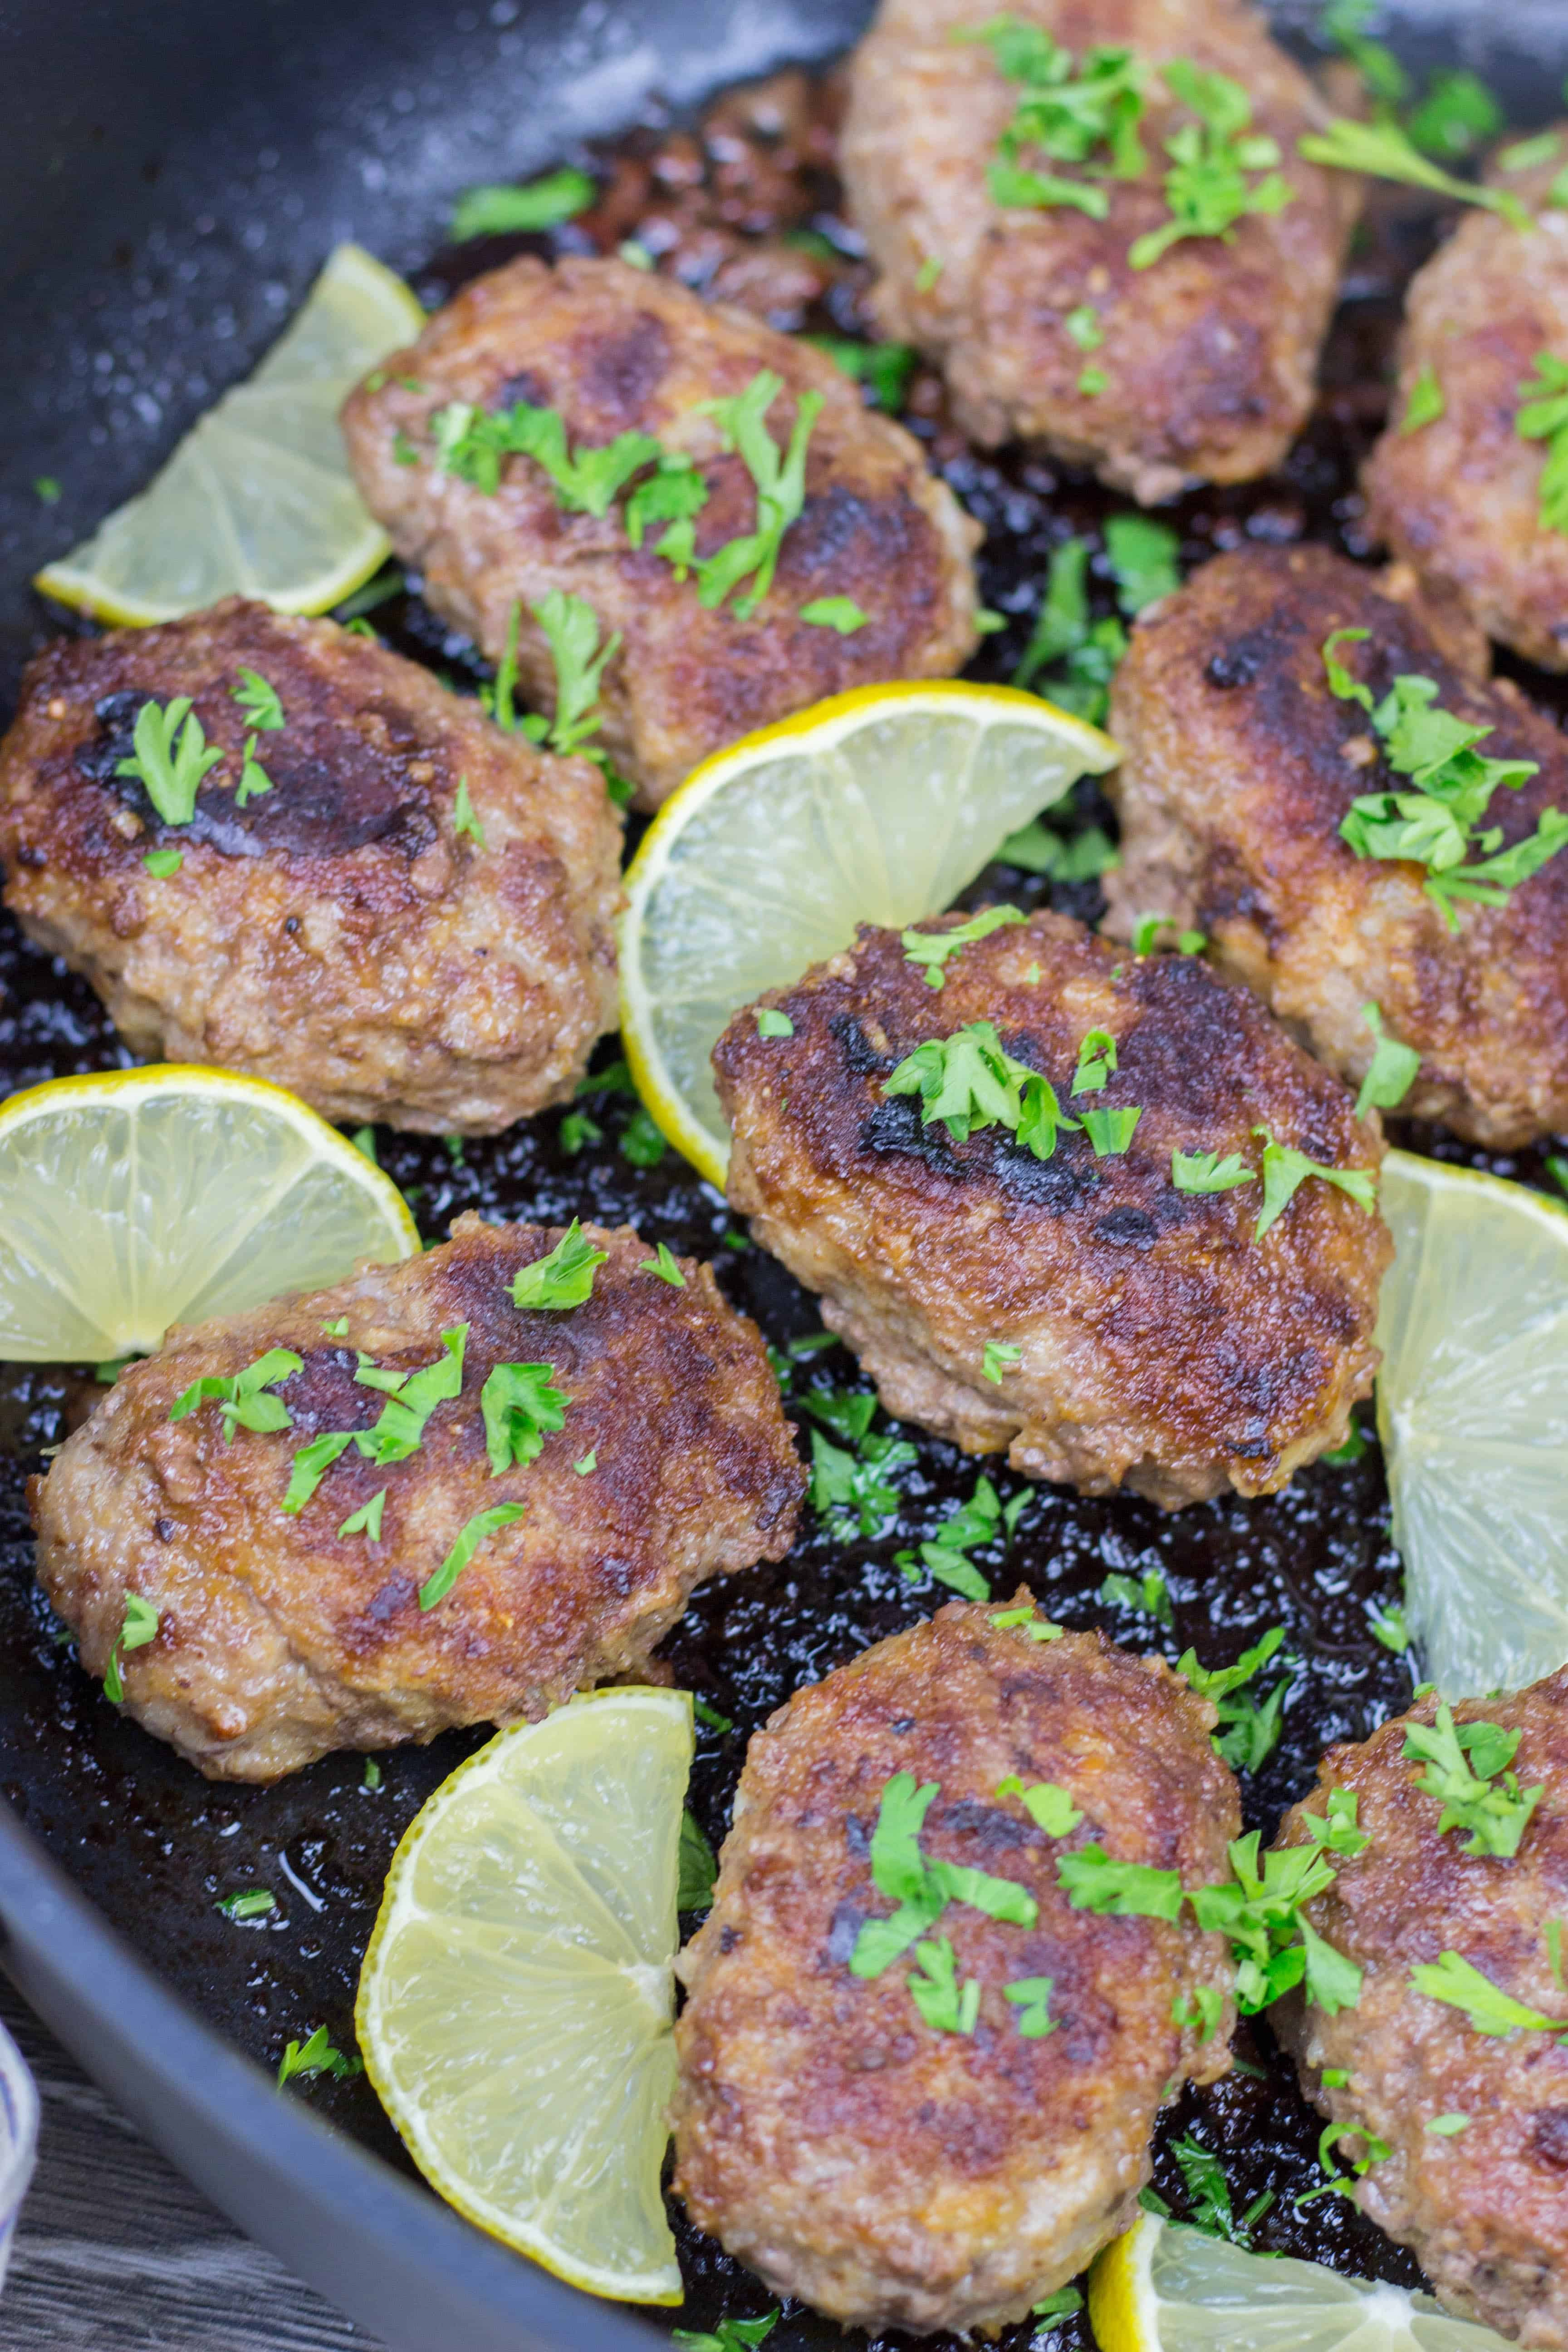 This Beef Cutlets recipe, also known as Kotleti will be great for easy dinner ideas, and a perfect meal for kids.